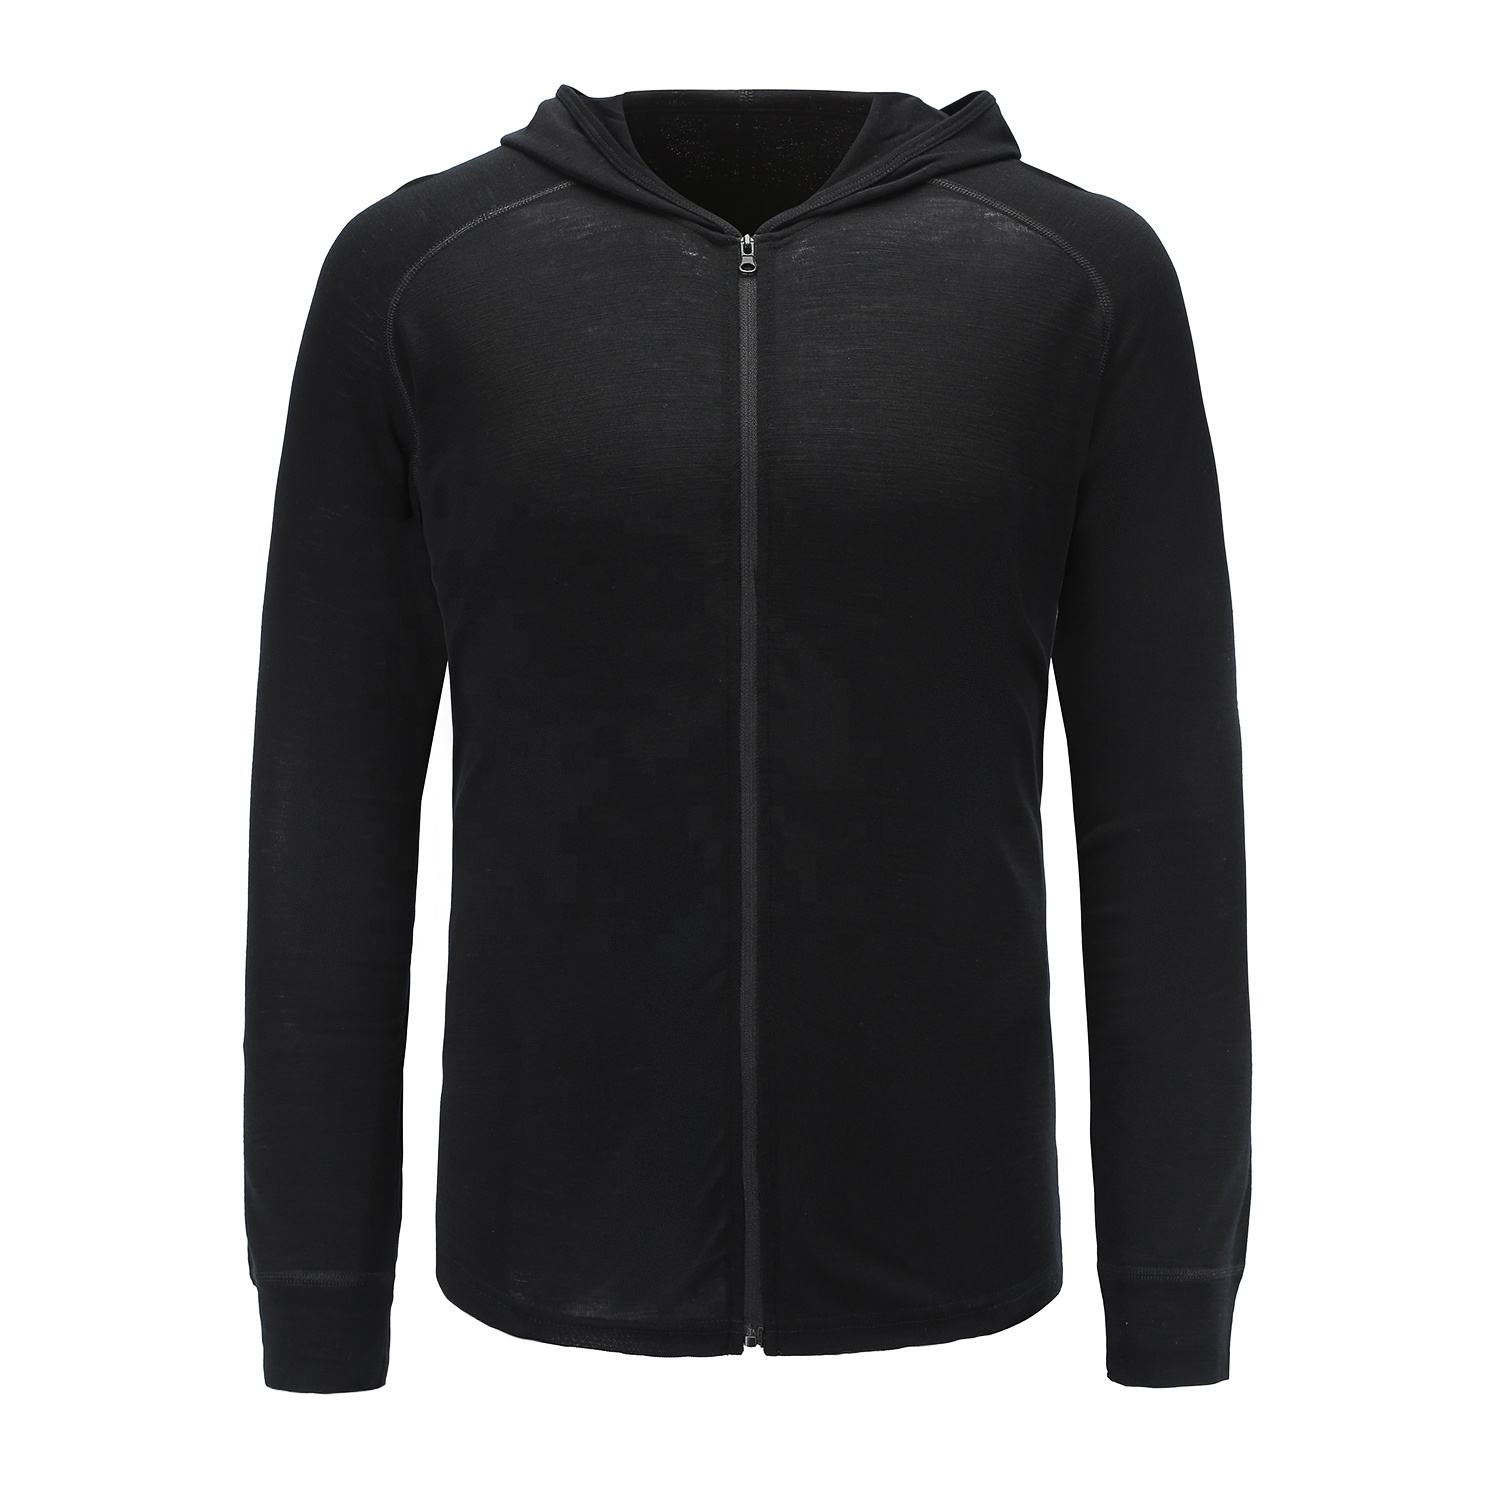 Ready to ship oem make Latest design Winter high quality merino wool Cycling Sports wear sets